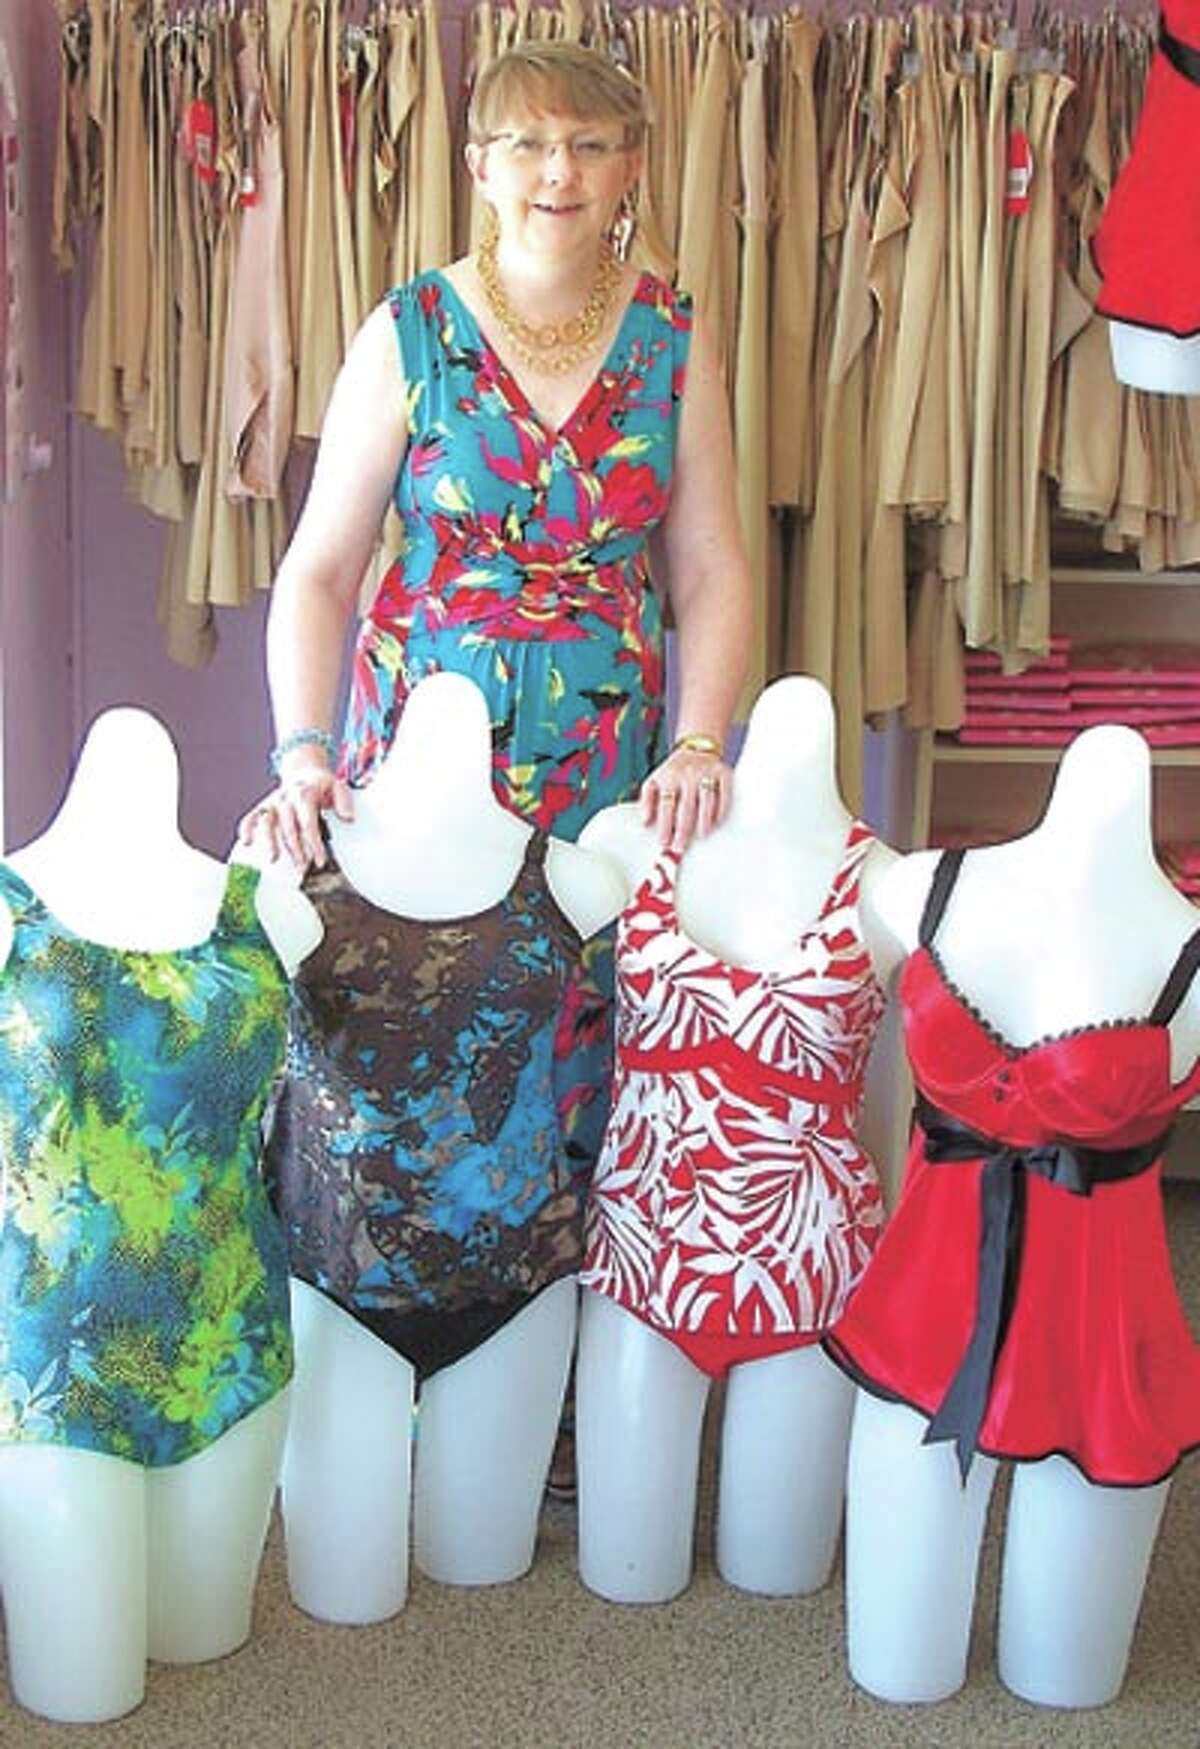 Ready to swim? Sharon Wilcox at The Pennyrich Shop has your swimsuit! She's at 311 Dodson Street in Old Town Midland. The shop is now open Tuesday through Saturday.